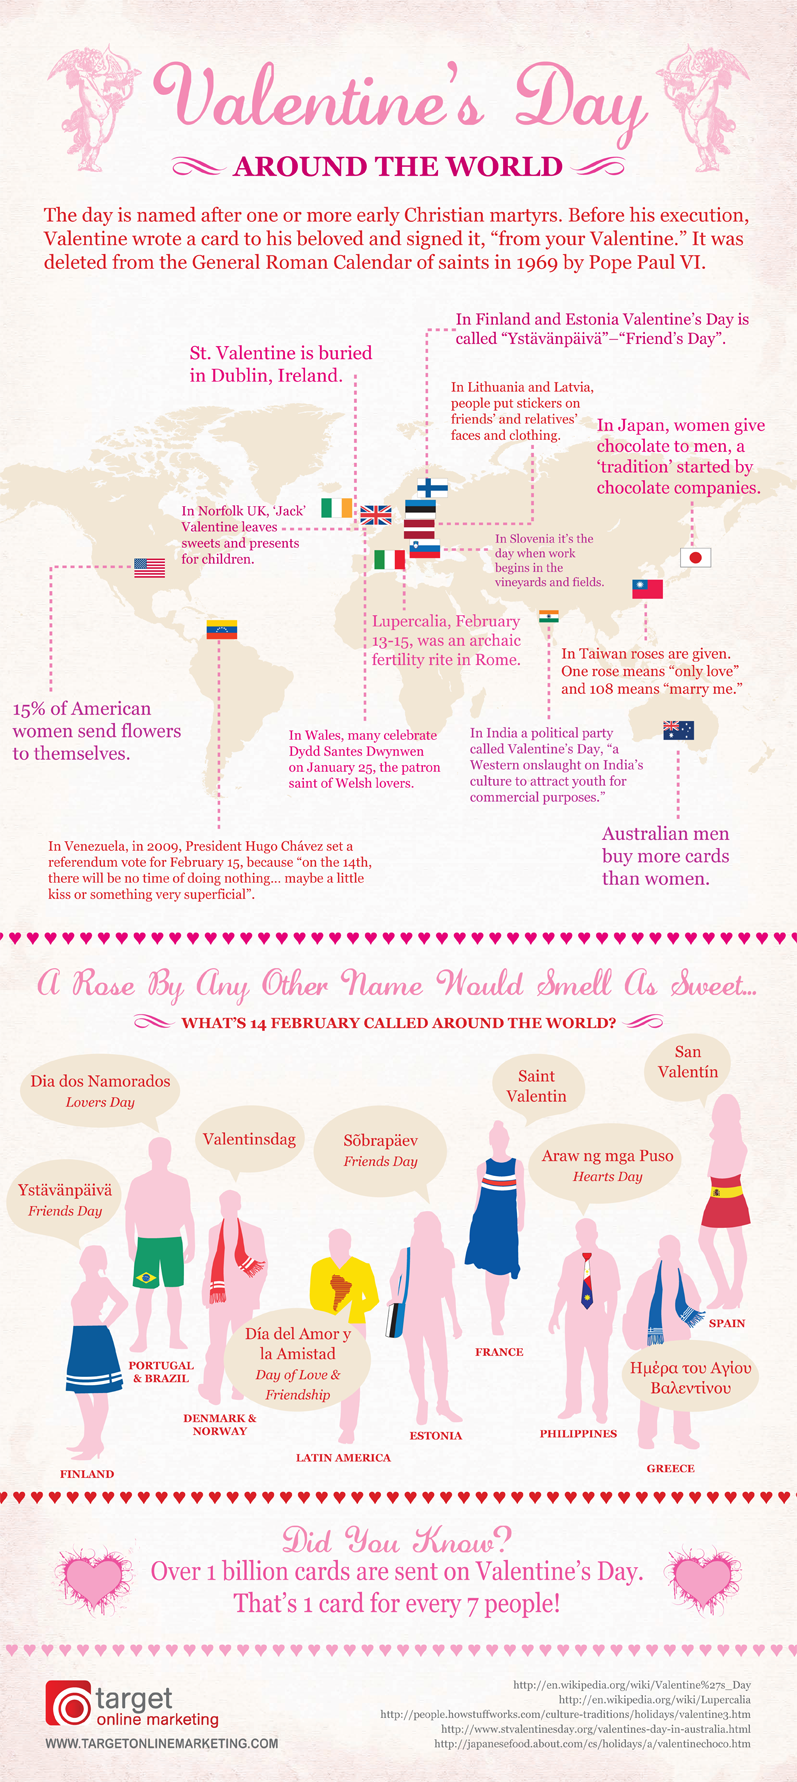 fun facts around the world about valentines day visually